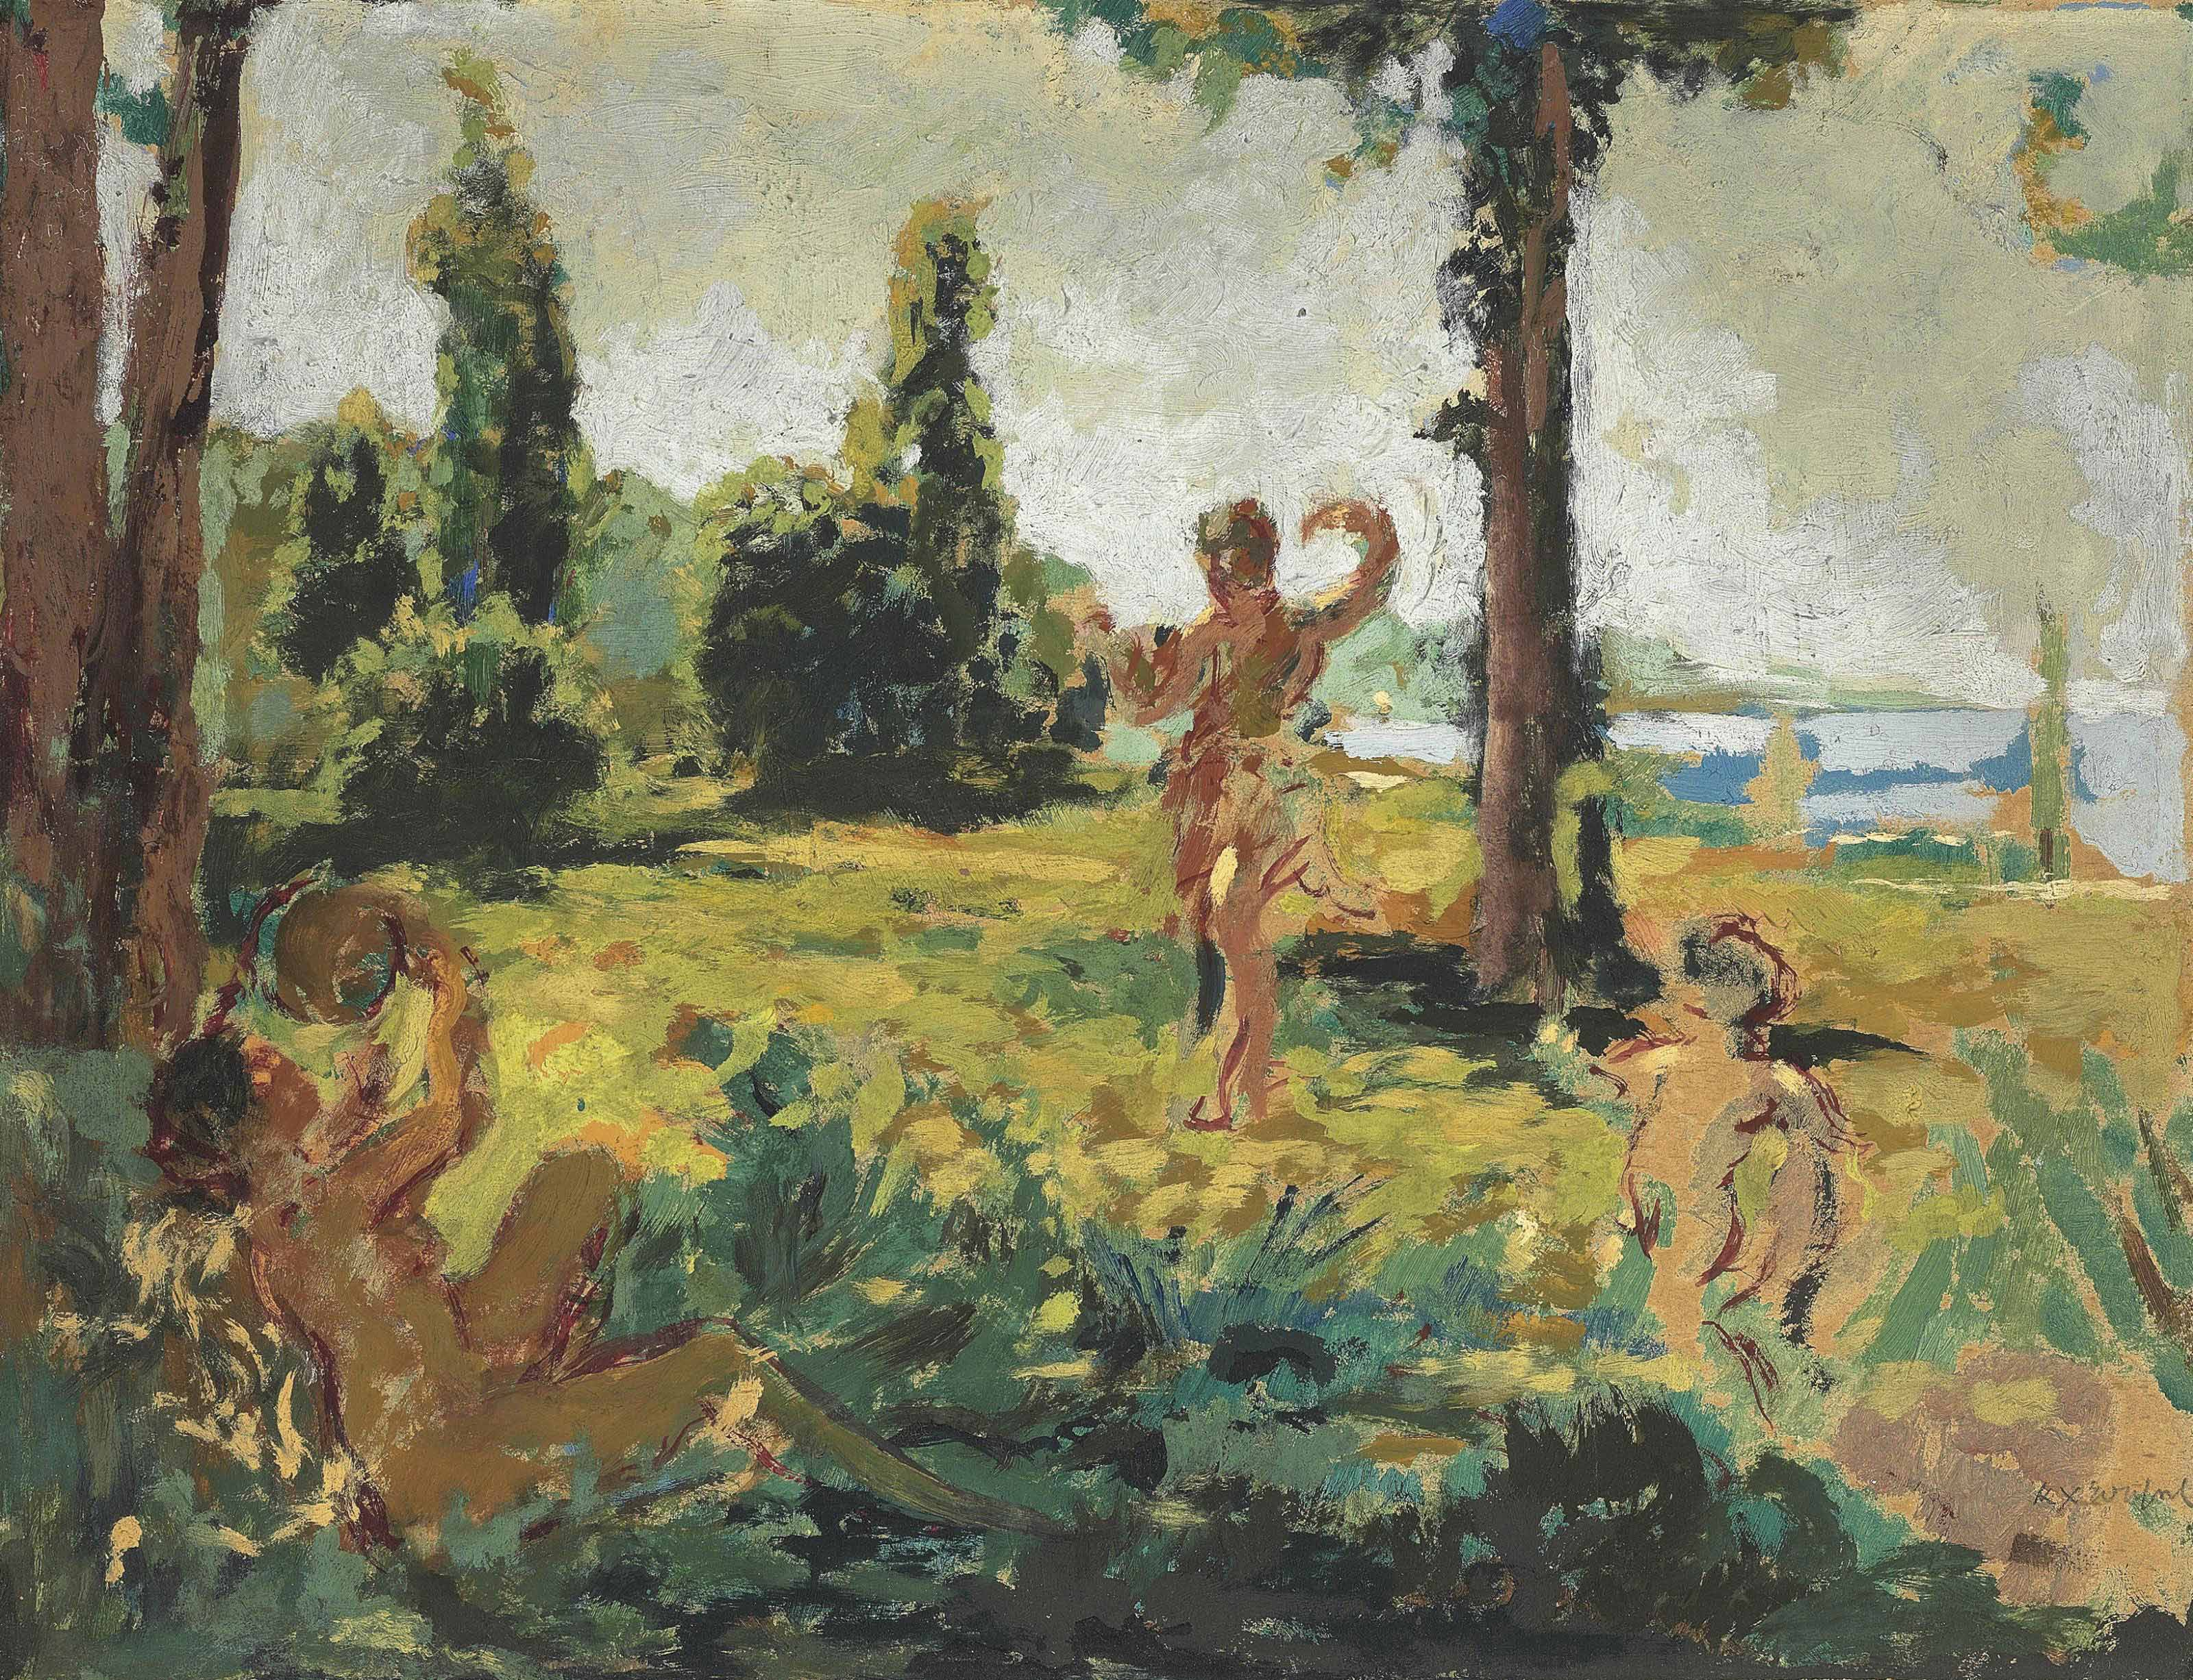 Dance of Nymphs